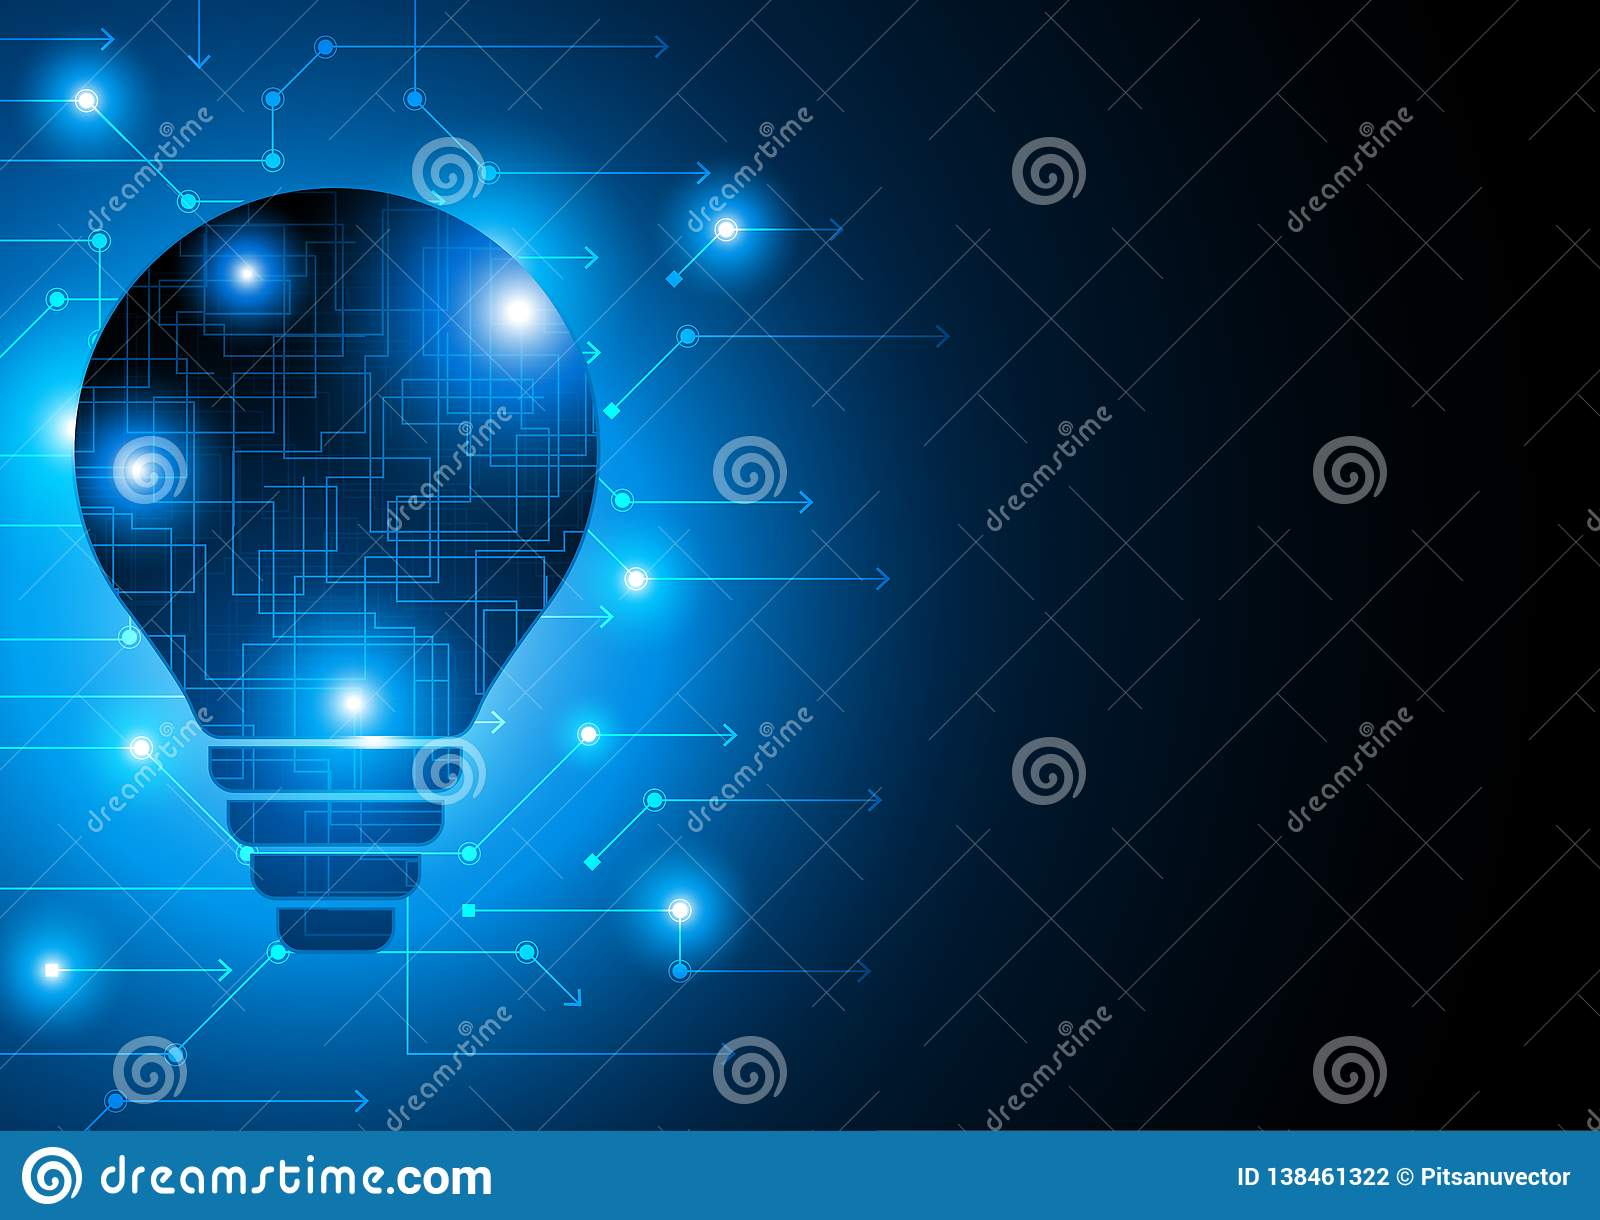 Transparent Bulb With Small Lights And Circuit Board On